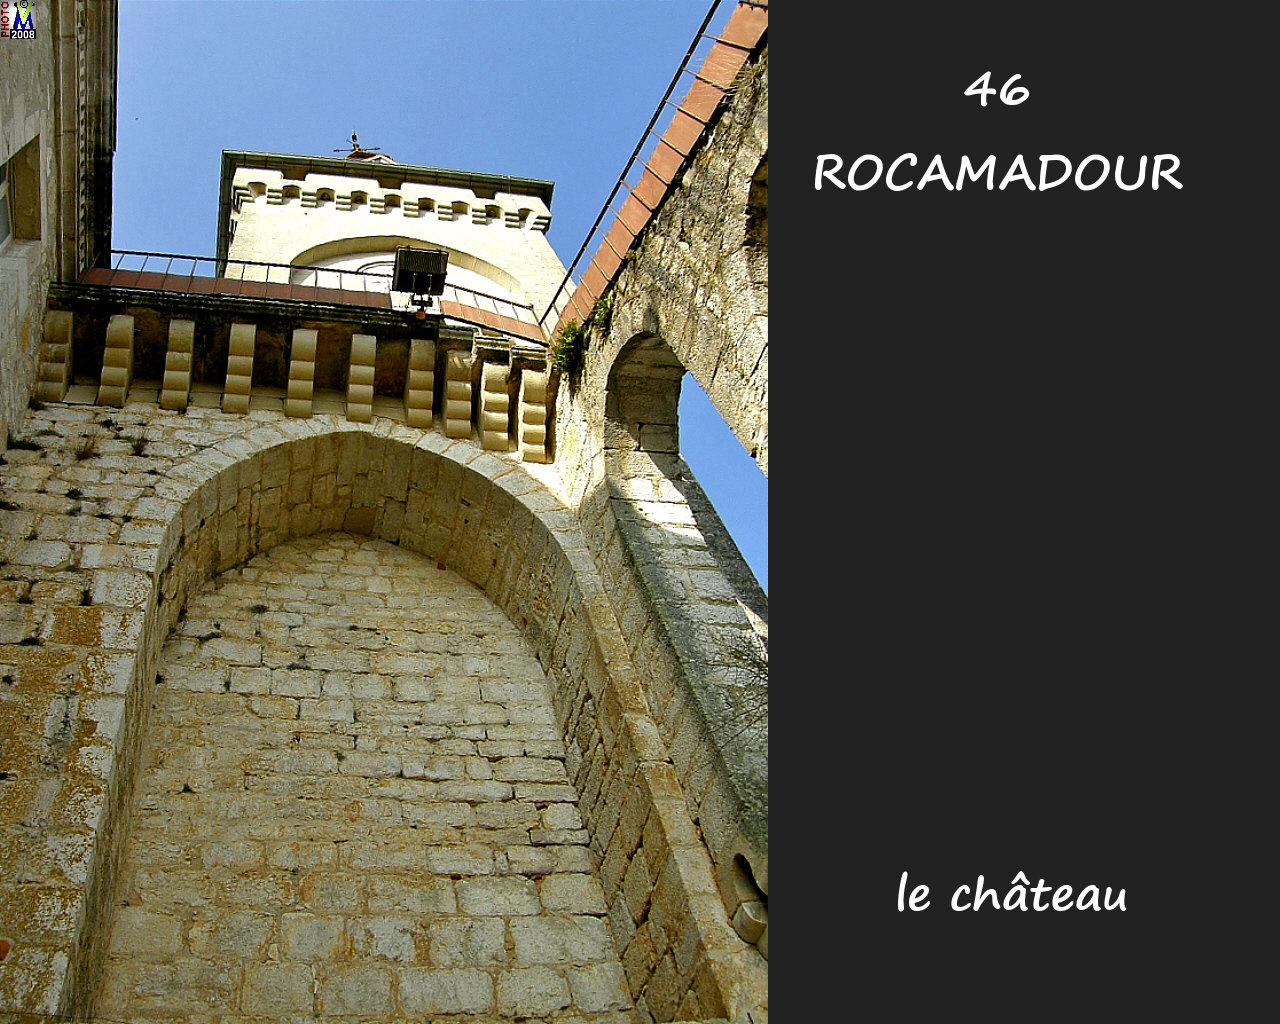 46ROCAMADOUR_chateau_120.jpg